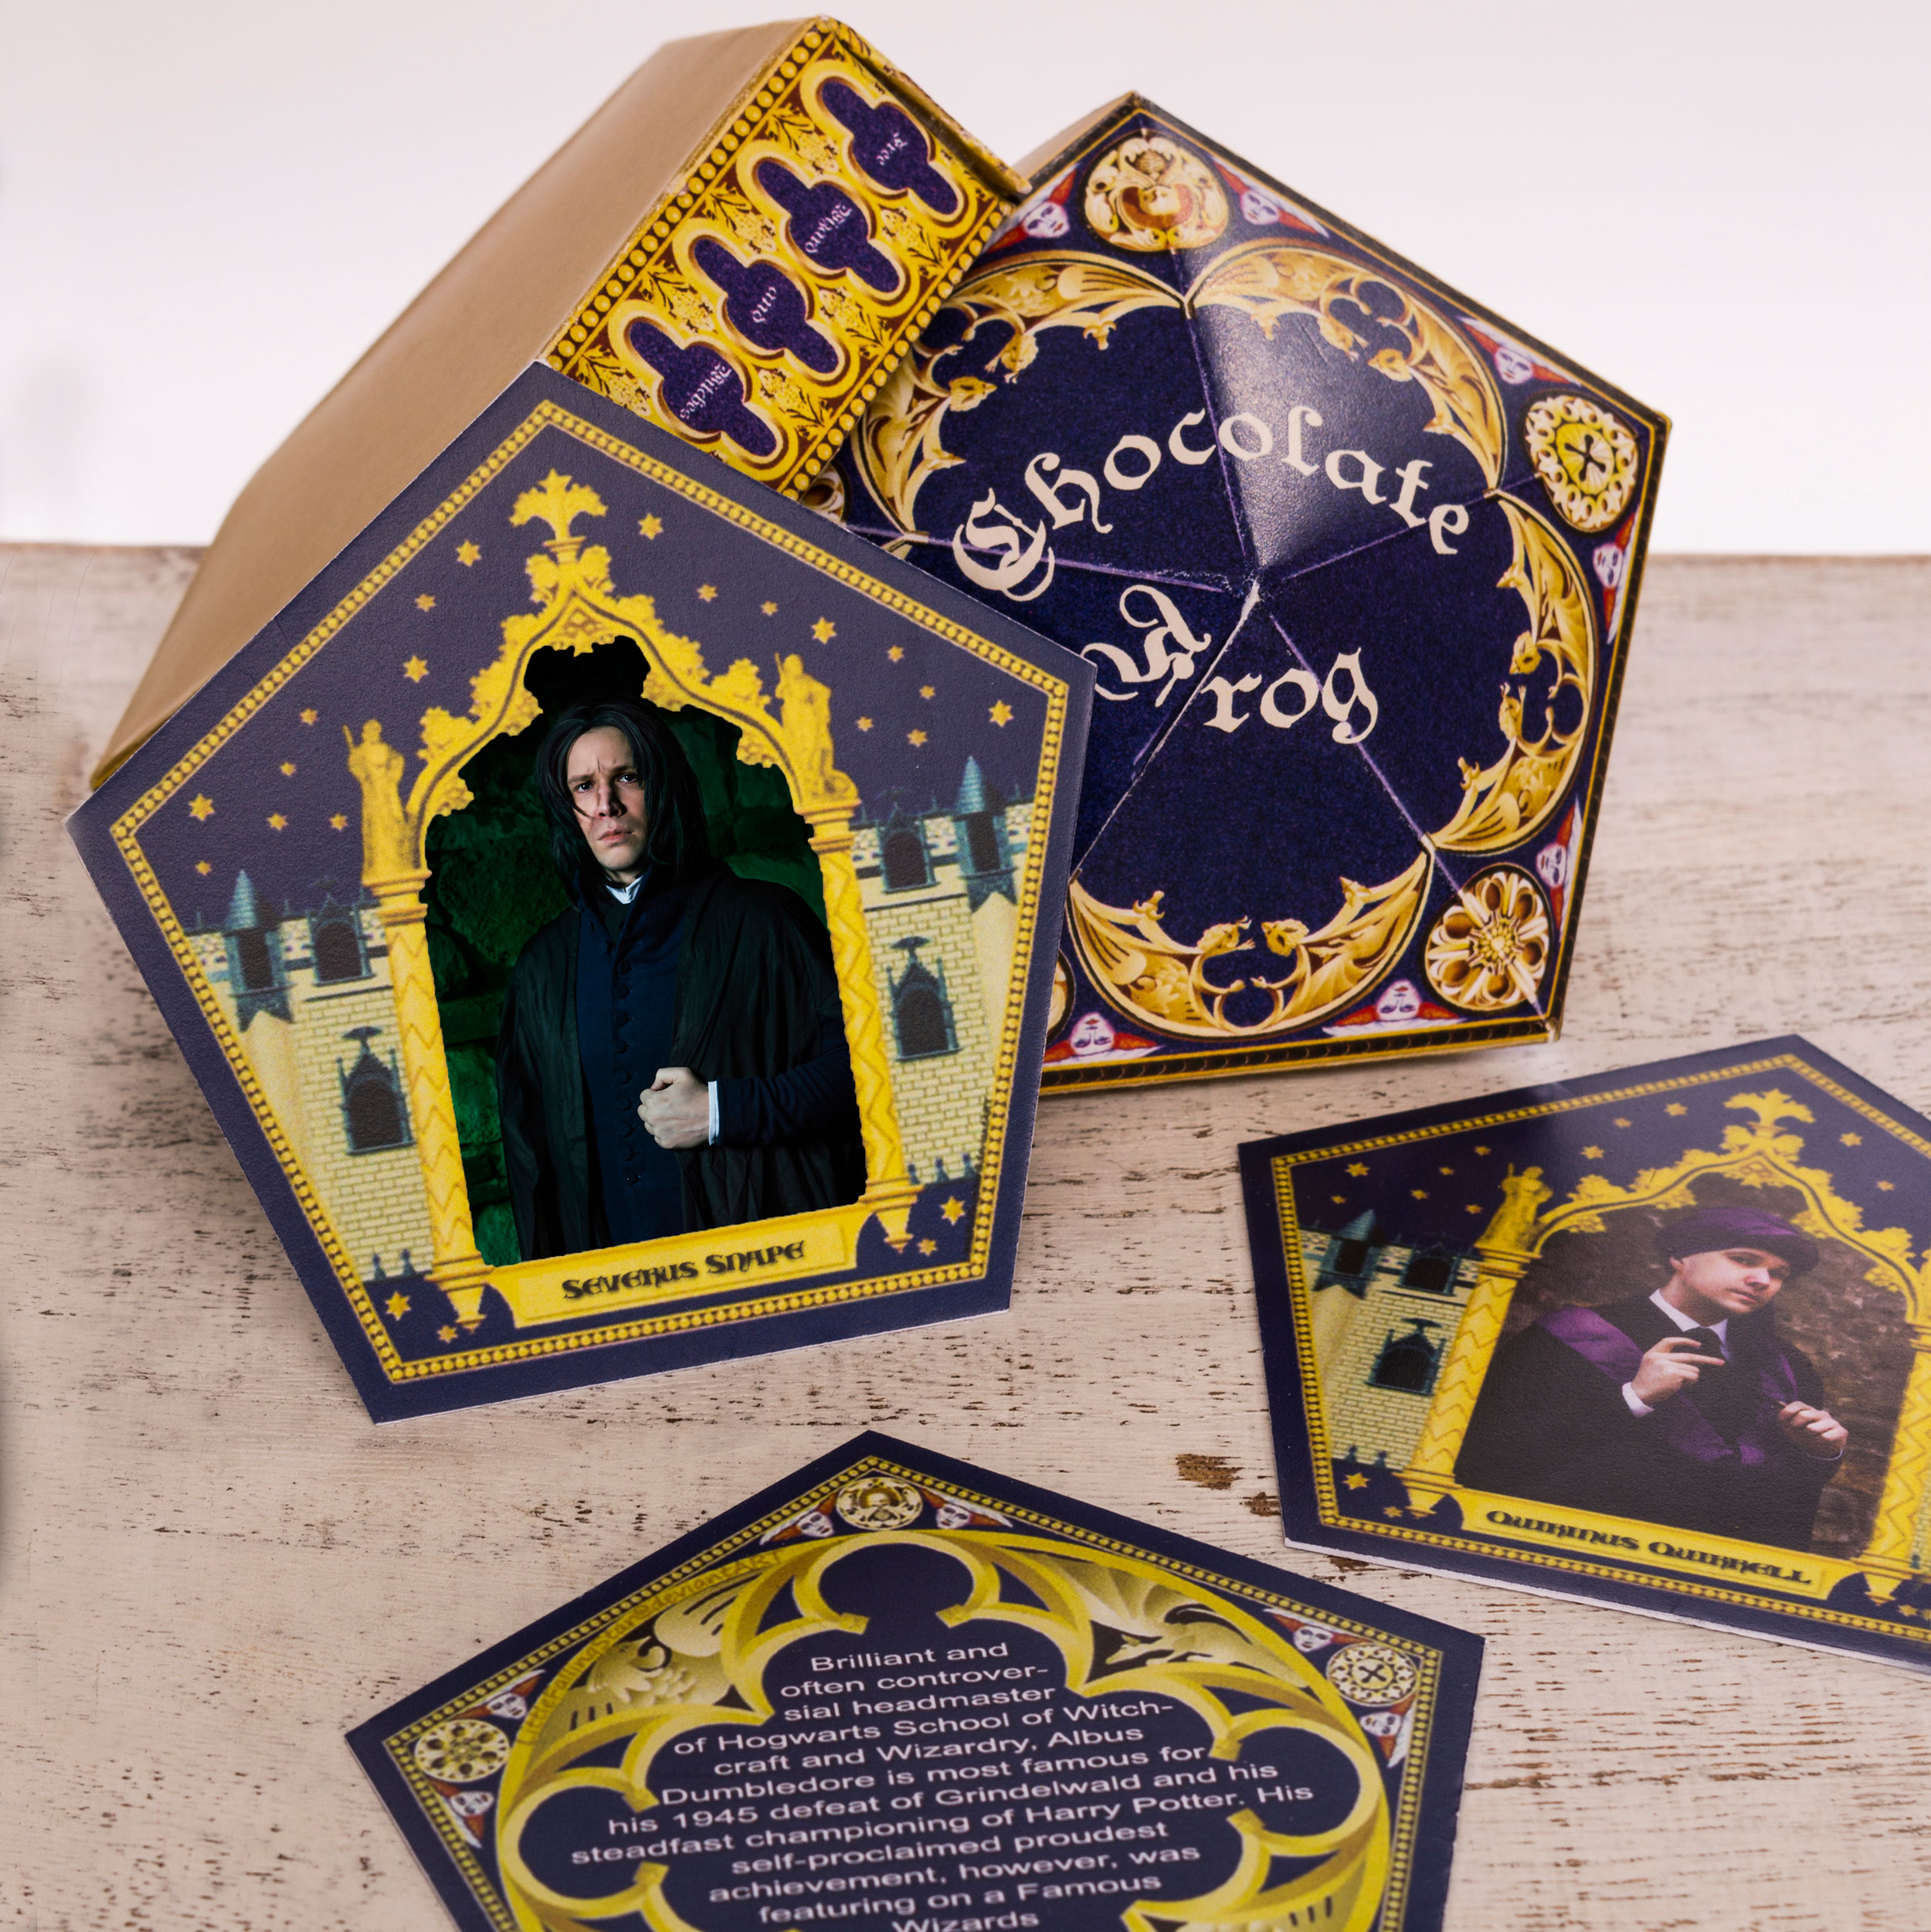 graphic relating to Harry Potter Chocolate Frog Cards Printable referred to as Harry Potter Cosplay Chocolate Frog Playing cards and Other Potter Encouraged Goodies bought by means of Nerd Stress and anxiety